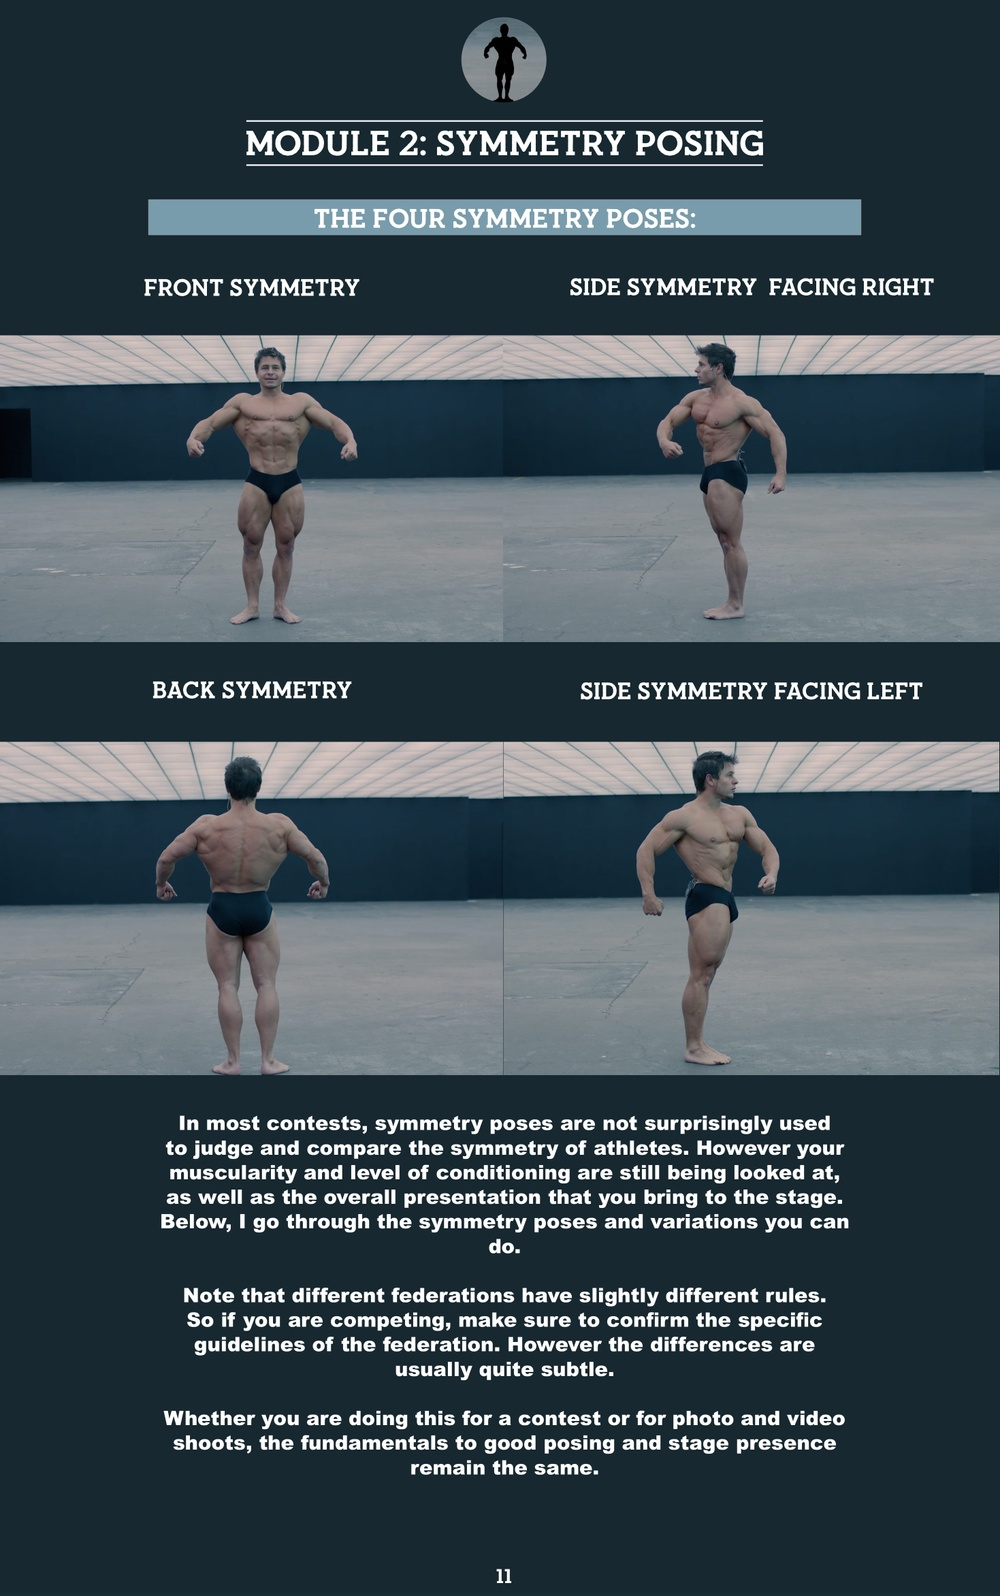 1  Introduction to symmetry posing and the front symmetry pose | The